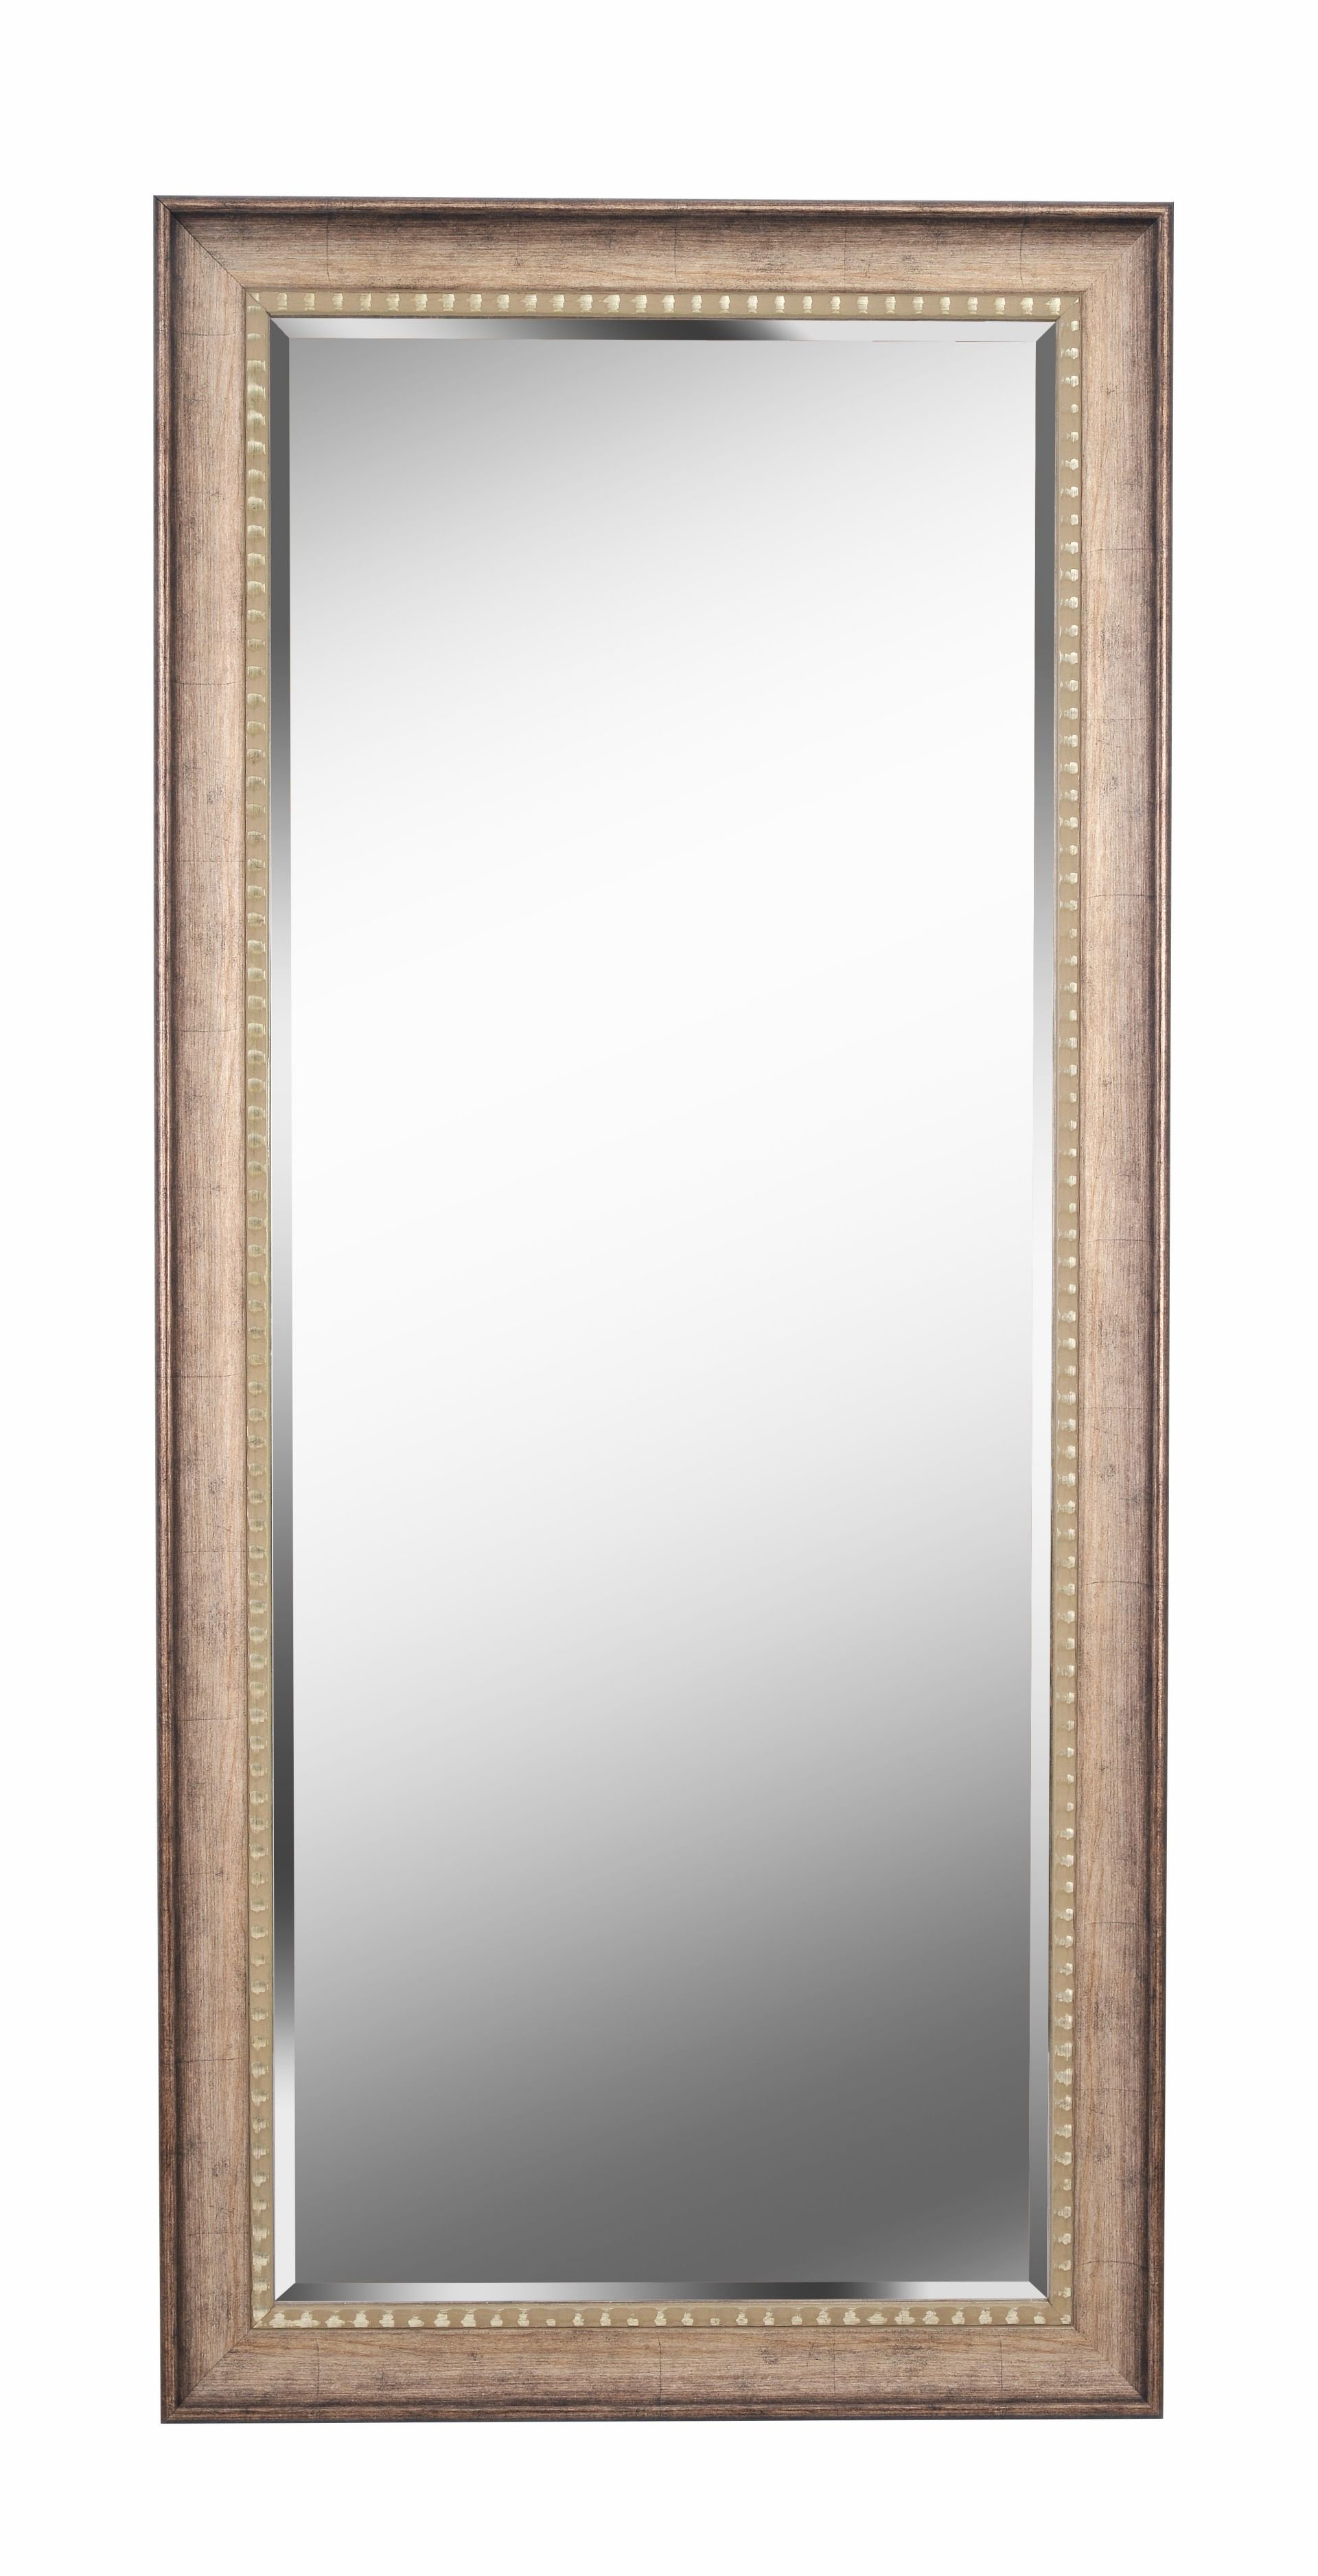 Brunswick Floor Rustic Beveled Distressed Full Length Mirror With Regard To Boyers Wall Mirrors (Image 8 of 20)